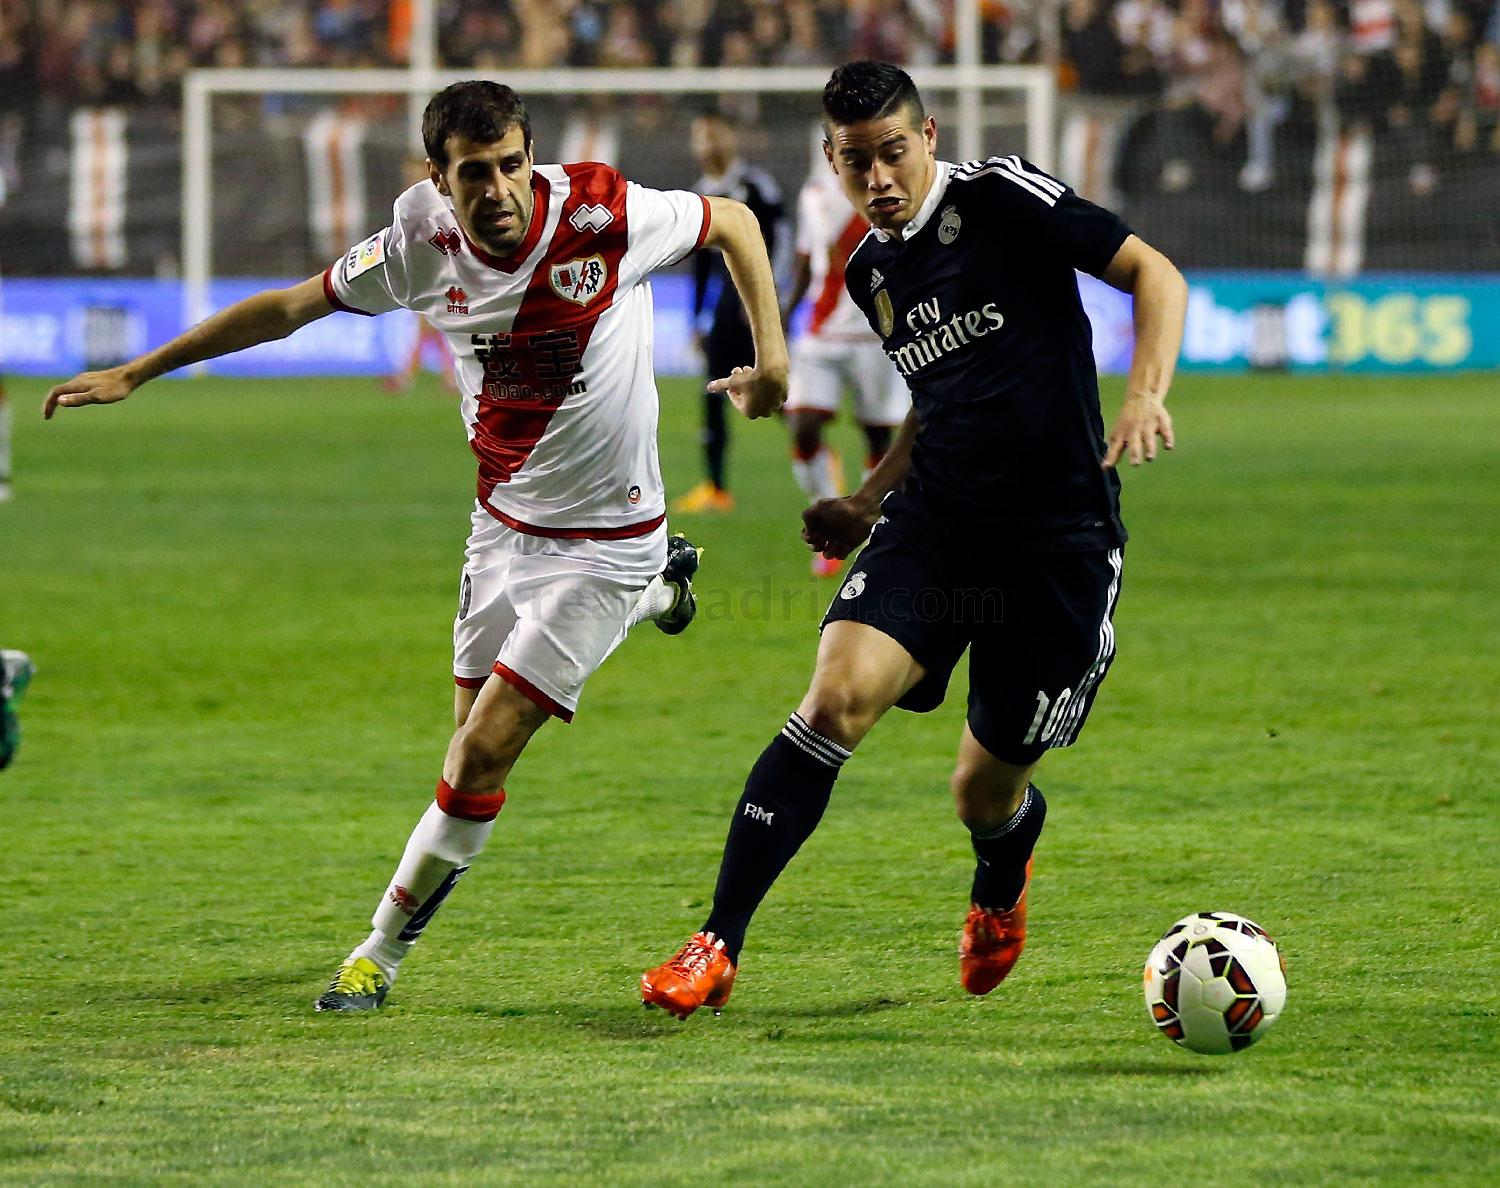 Real Madrid - Rayo Vallecano - Real Madrid - 08-04-2015